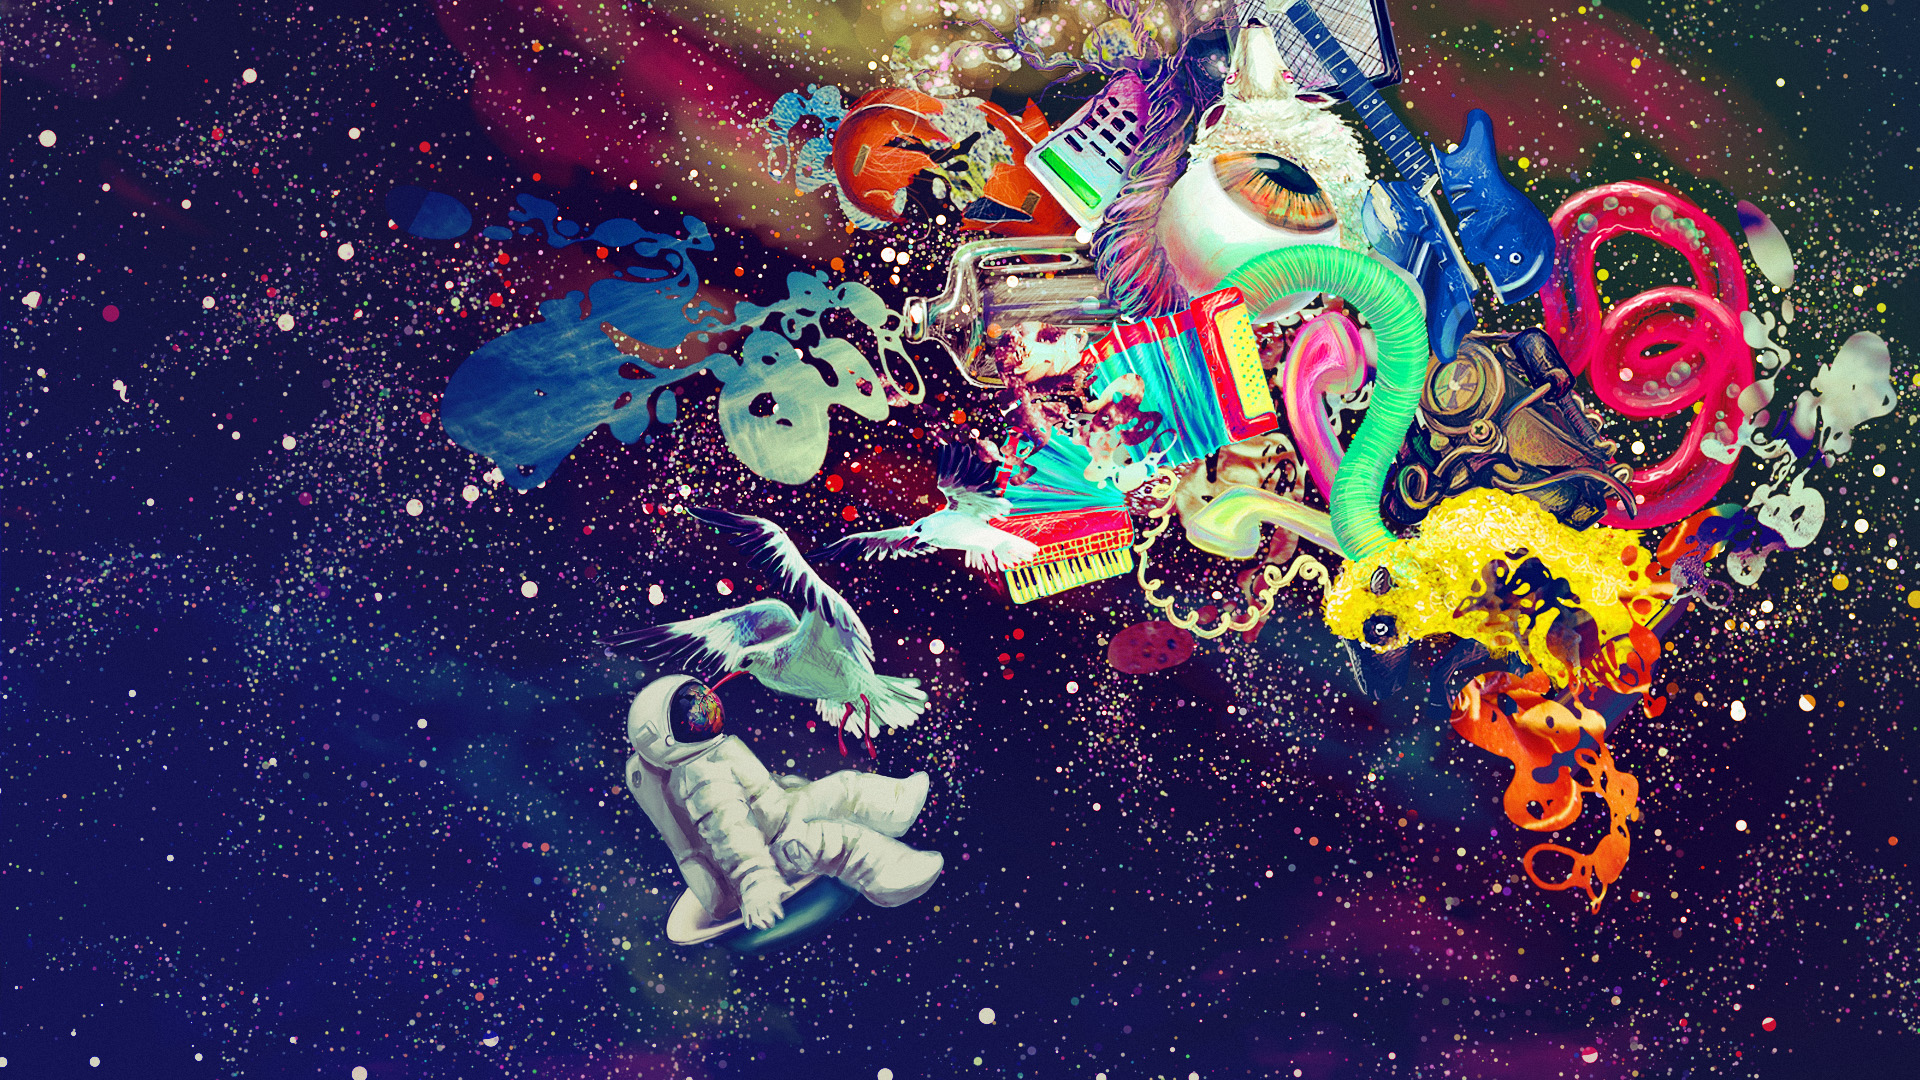 psychedelic space Desktop and mobile wallpaper Wallippo 1920x1080